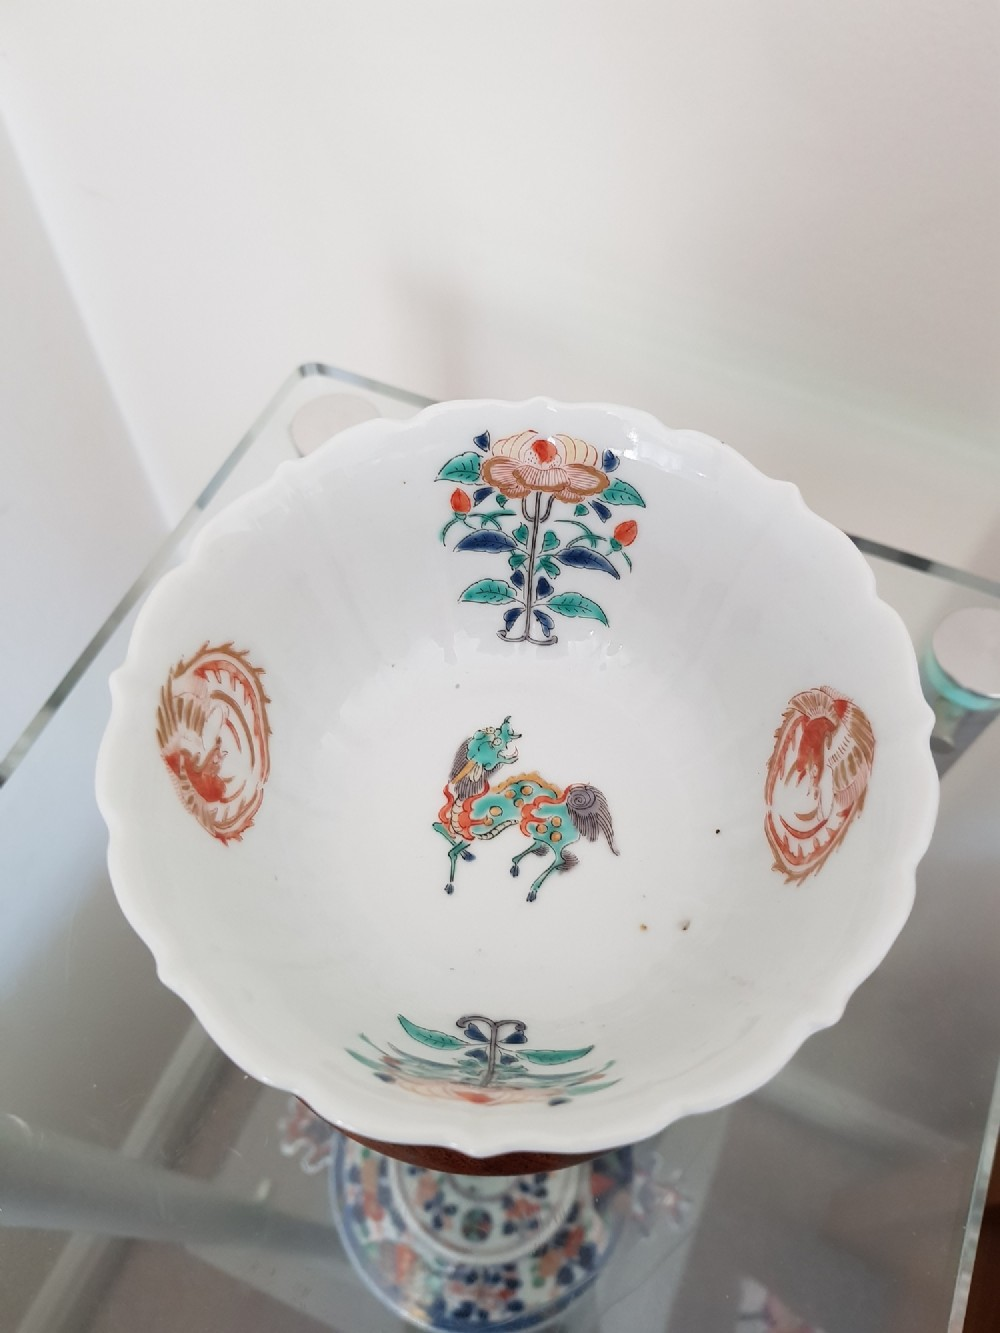 japanese kakiemon bowl probably arita with everted petal shaped rim dating to the 18th century